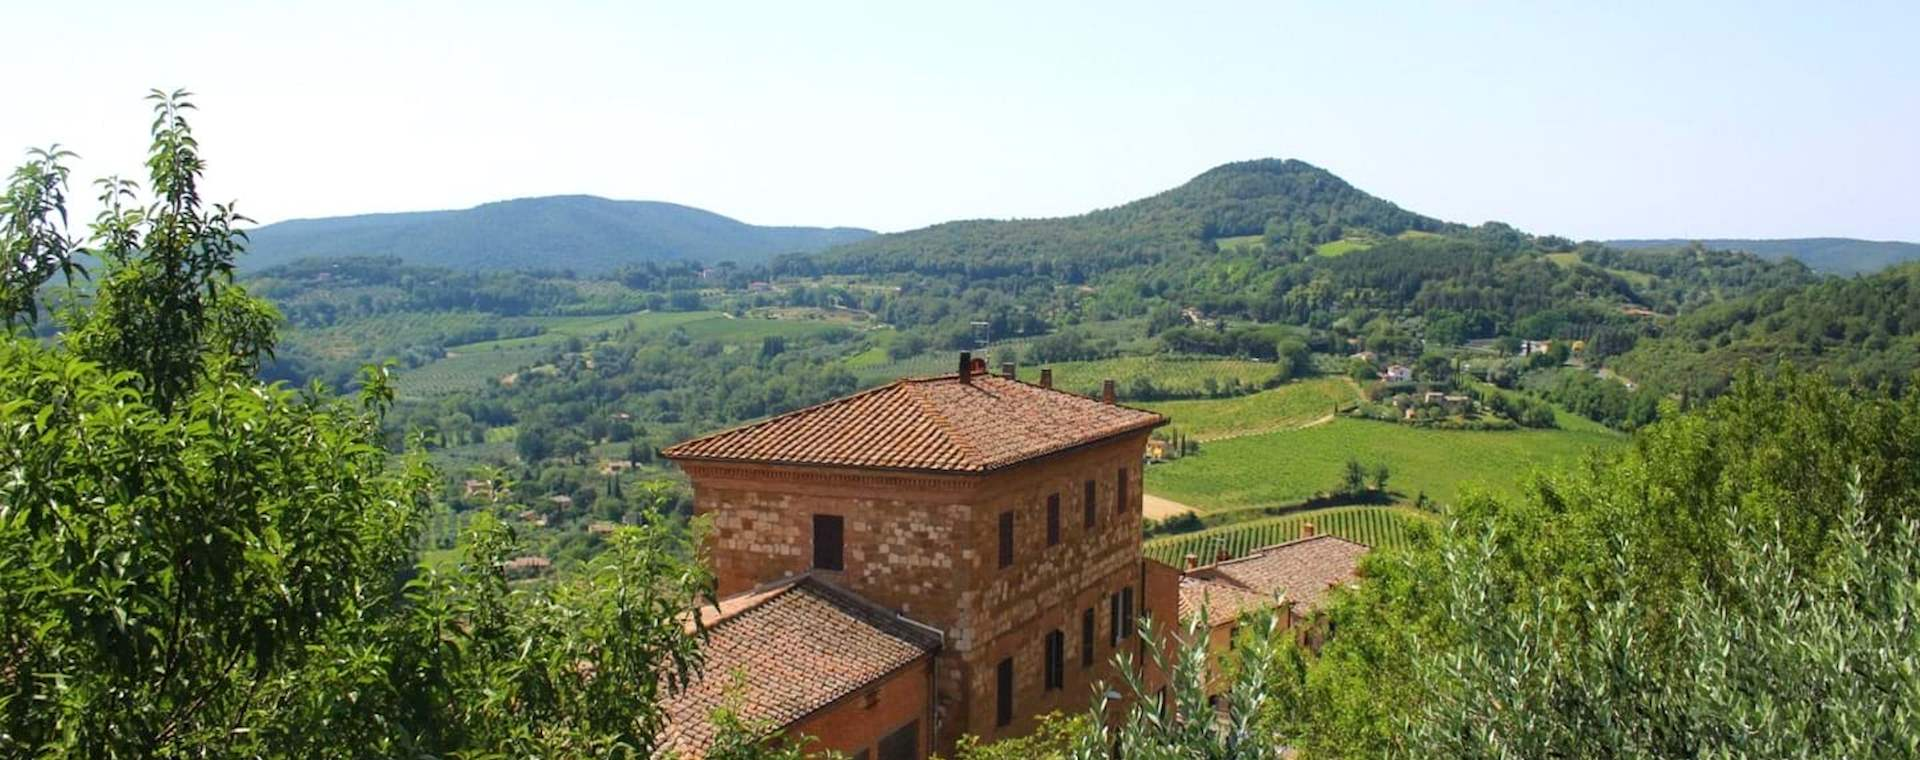 Day Trip: Tuscany from Rome with 3-Course Lunch & Wine Pairing